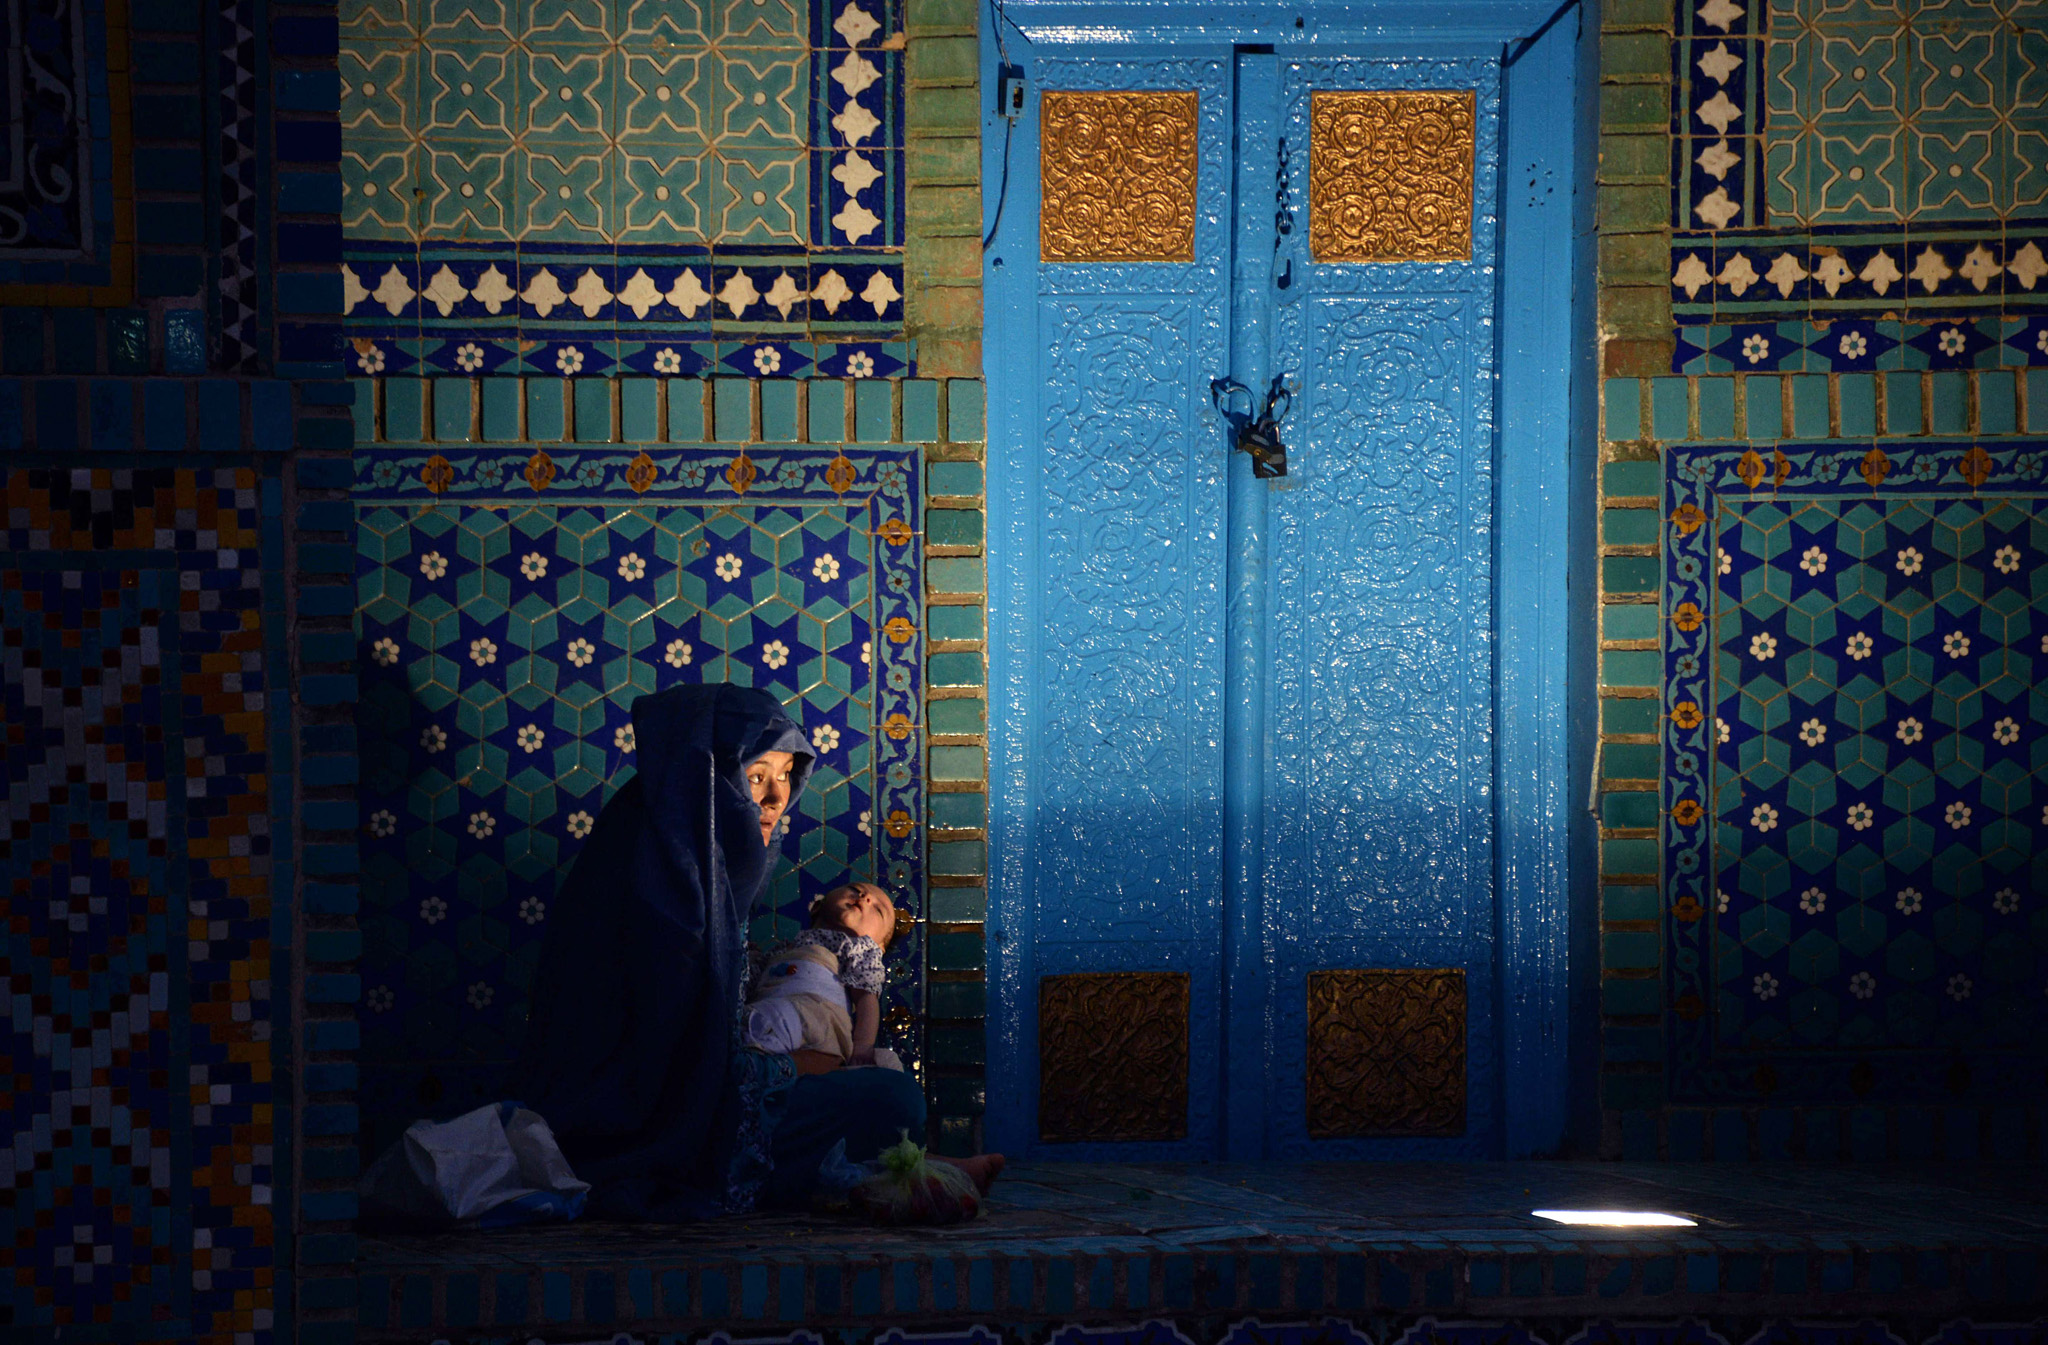 his photo taken on June 30, 2014 shows an Afghan burqa-clad woman waiting to break fast during the holy month of Ramadan at the Hazrat-e-Ali shrine, or Blue Mosque in Mazar-i-Sharif.    Across the Muslim world, the faithful fast from dawn to dusk, and abstain from eating, drinking, smoking and having sex during that time as they strive to be more pious and charitable.  AFP PHOTO/ Farshad UsyanFA